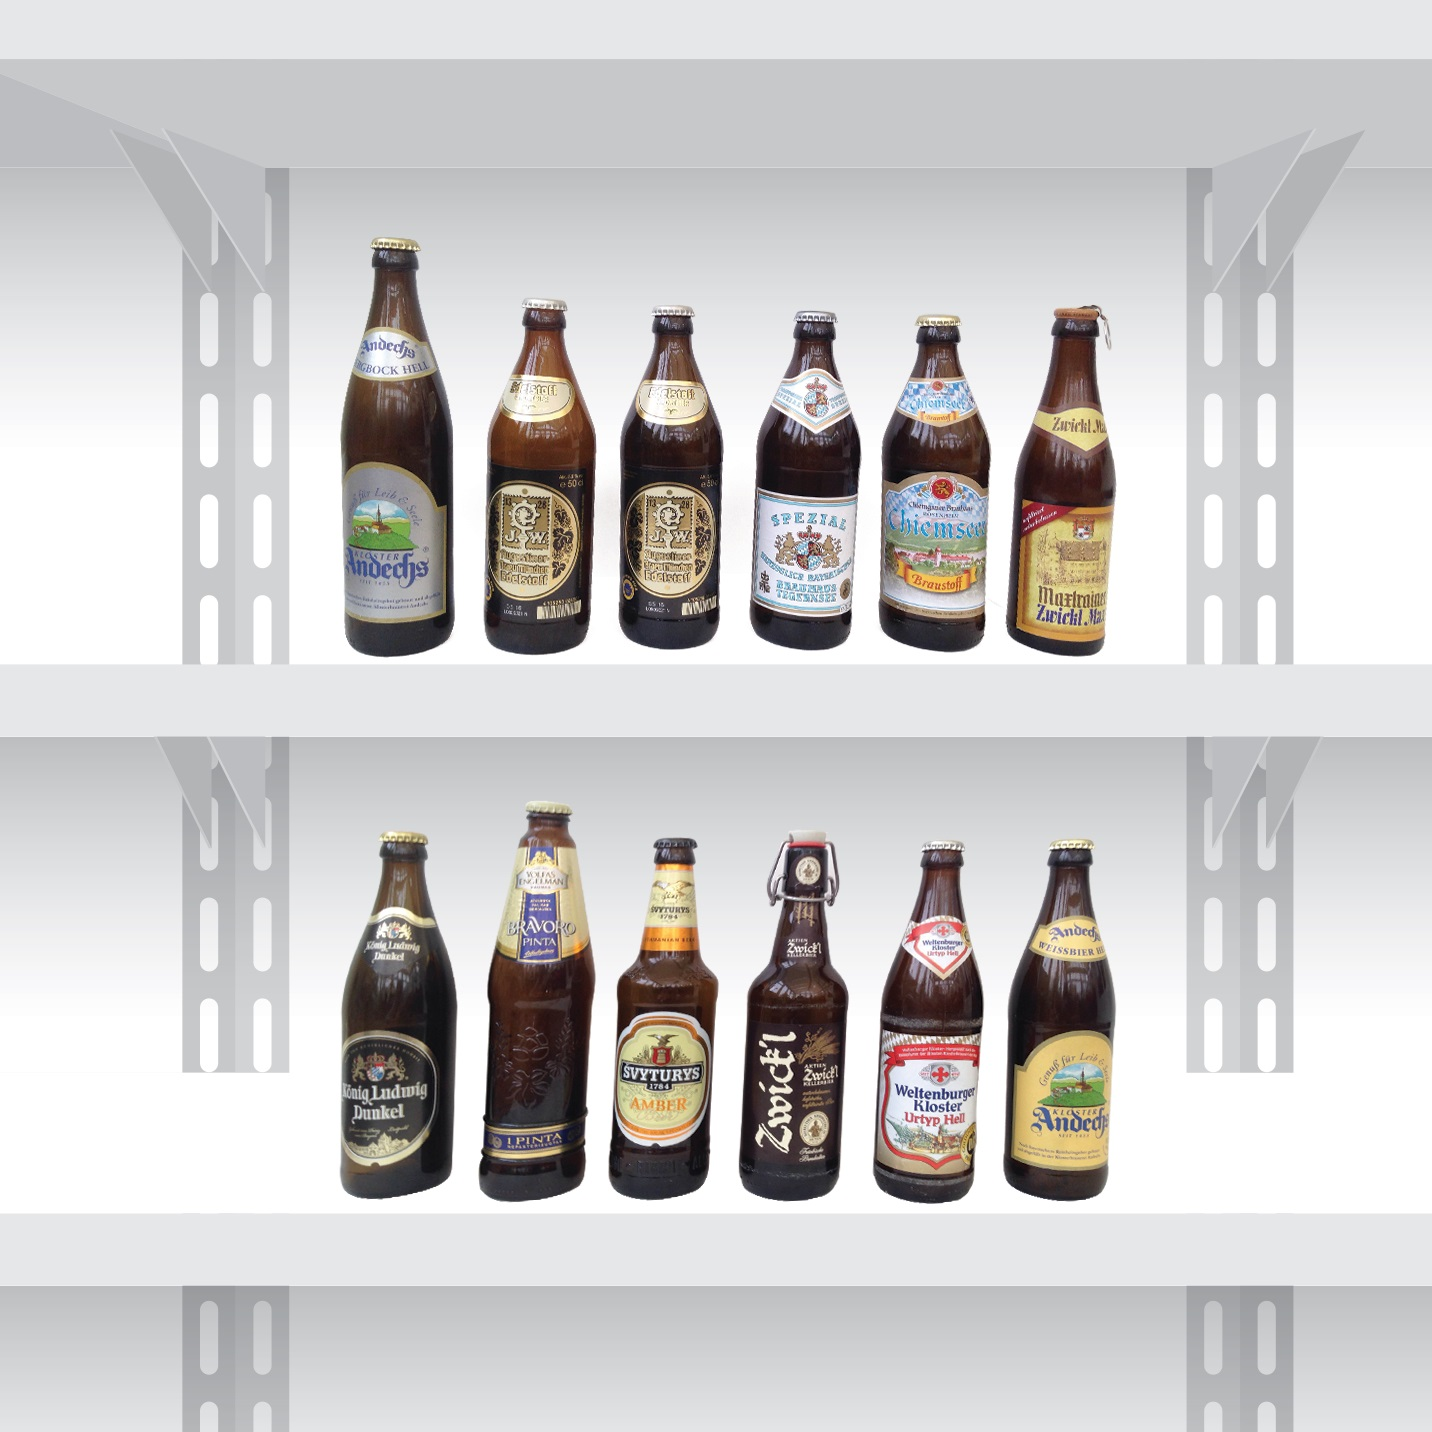 Beer brand study reveals that attractive design is more ...